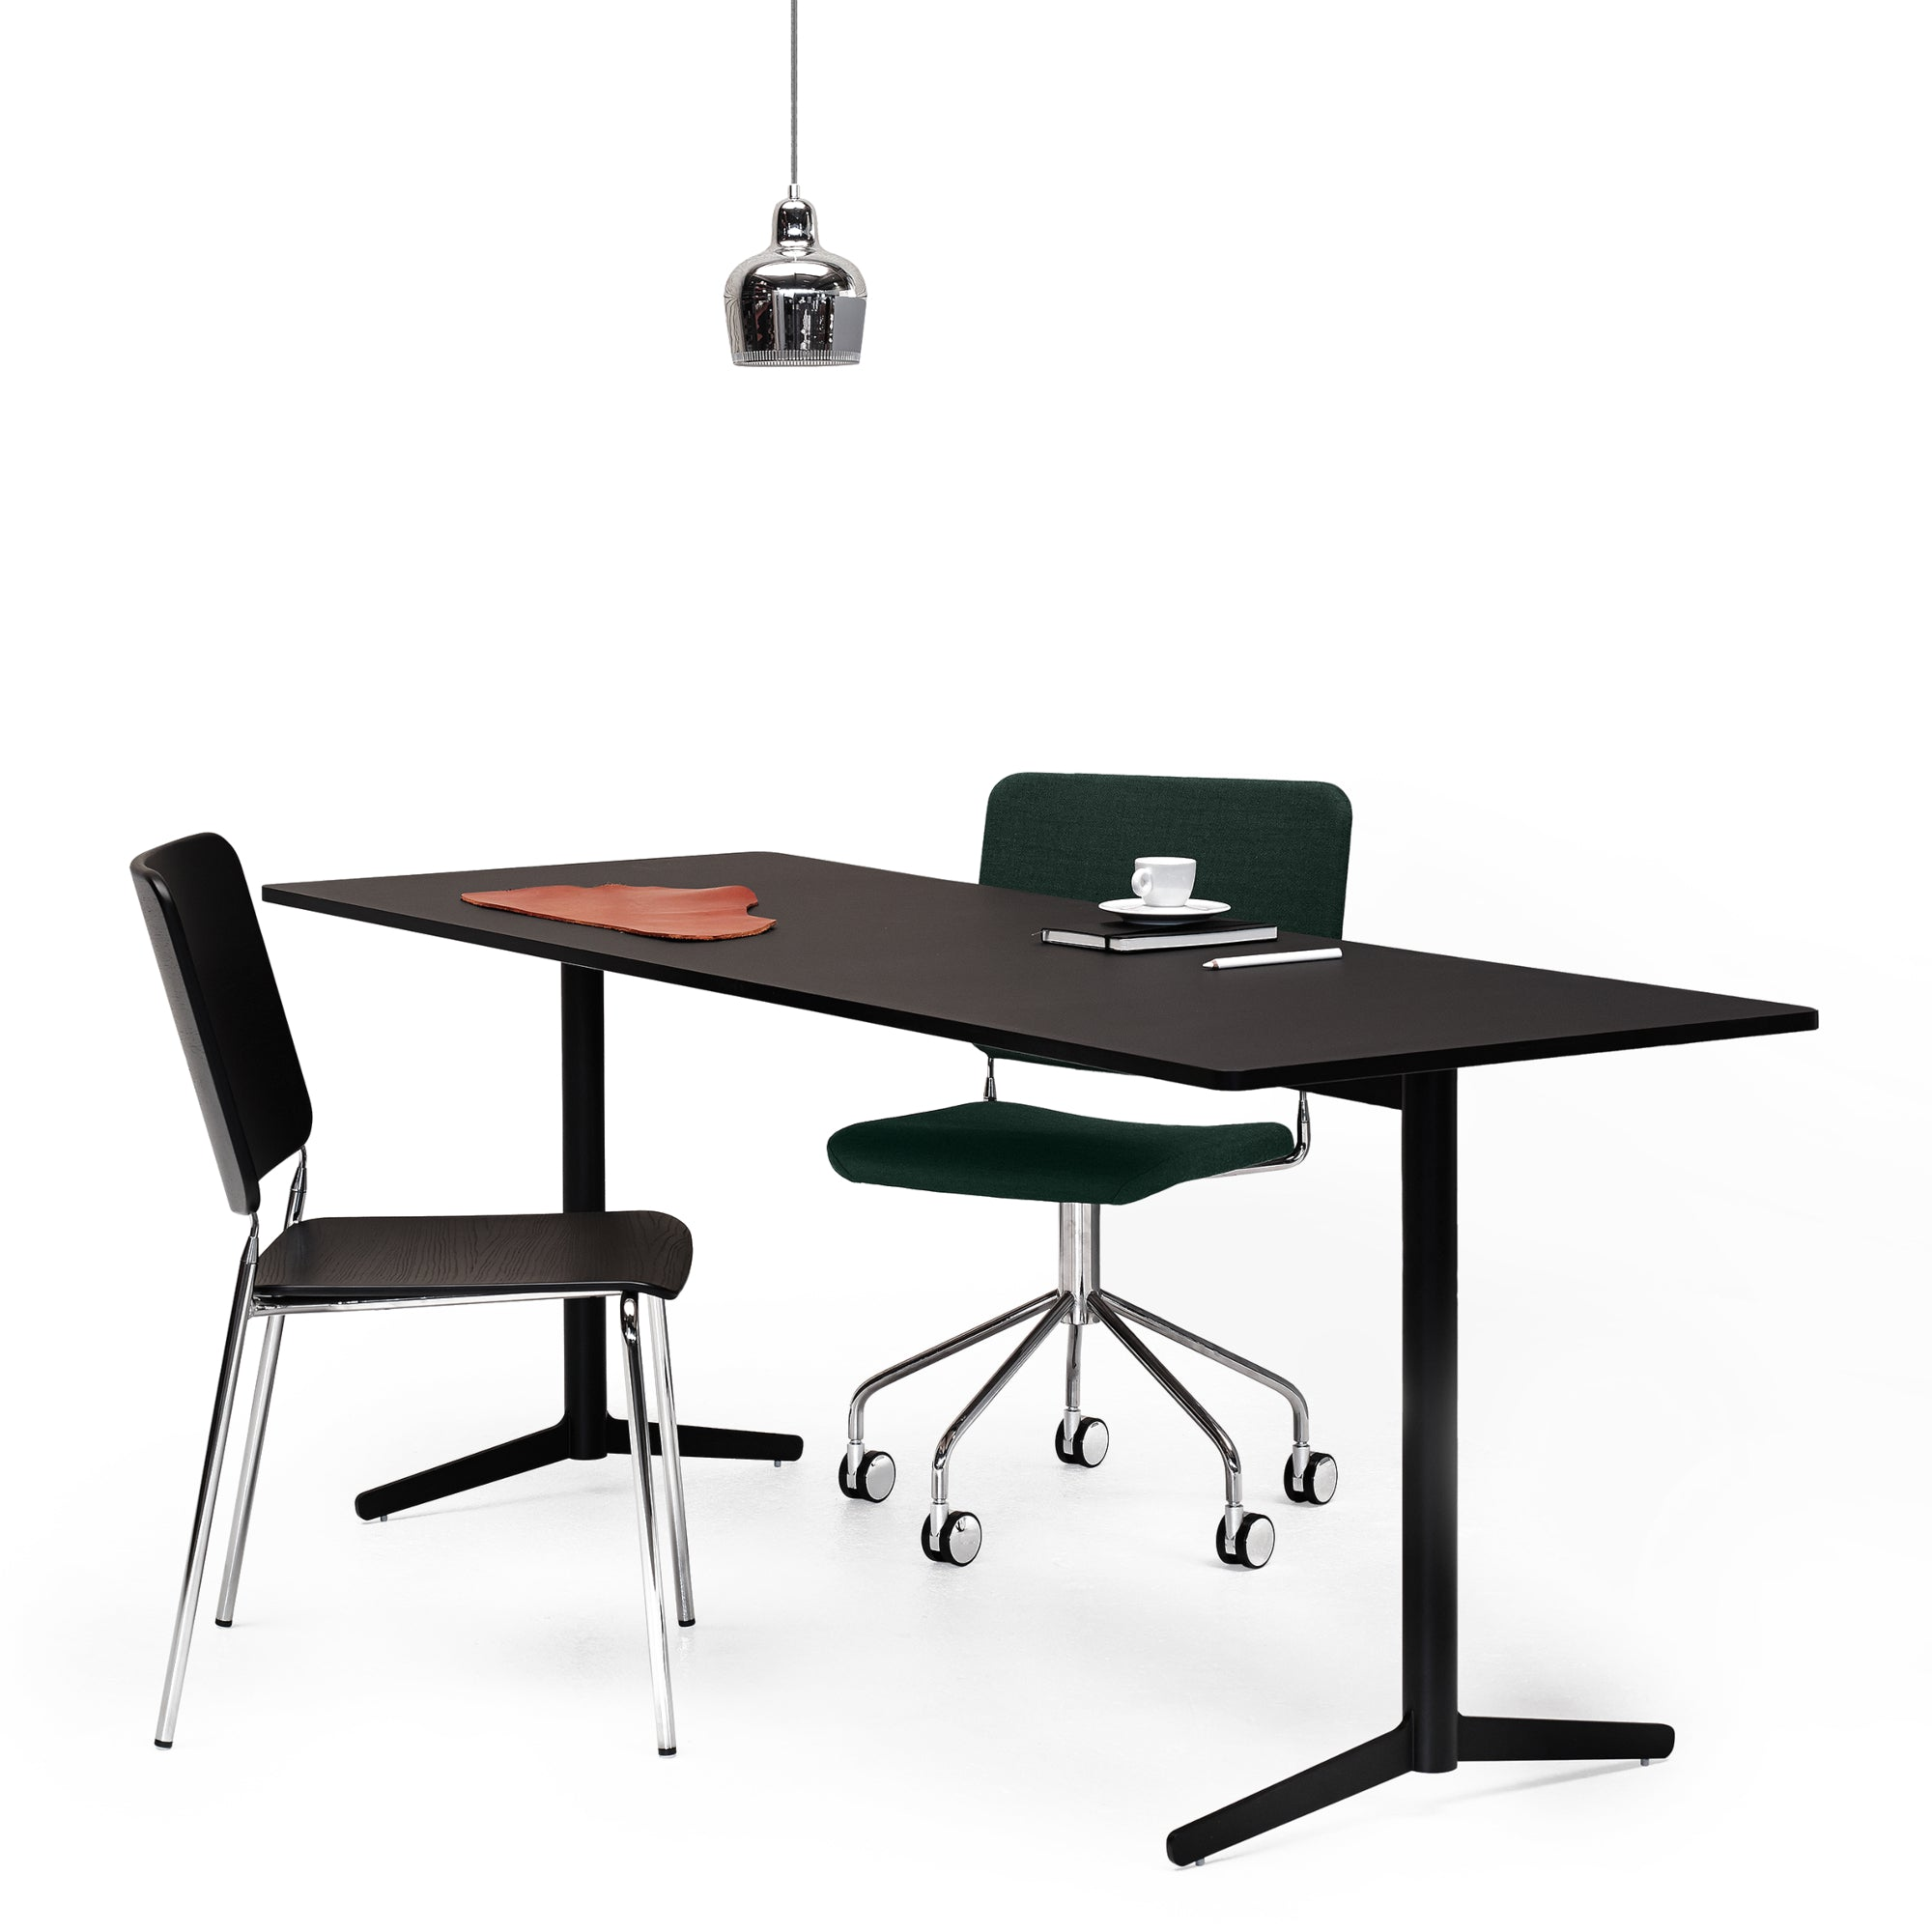 Edsbyn Office Feather Table